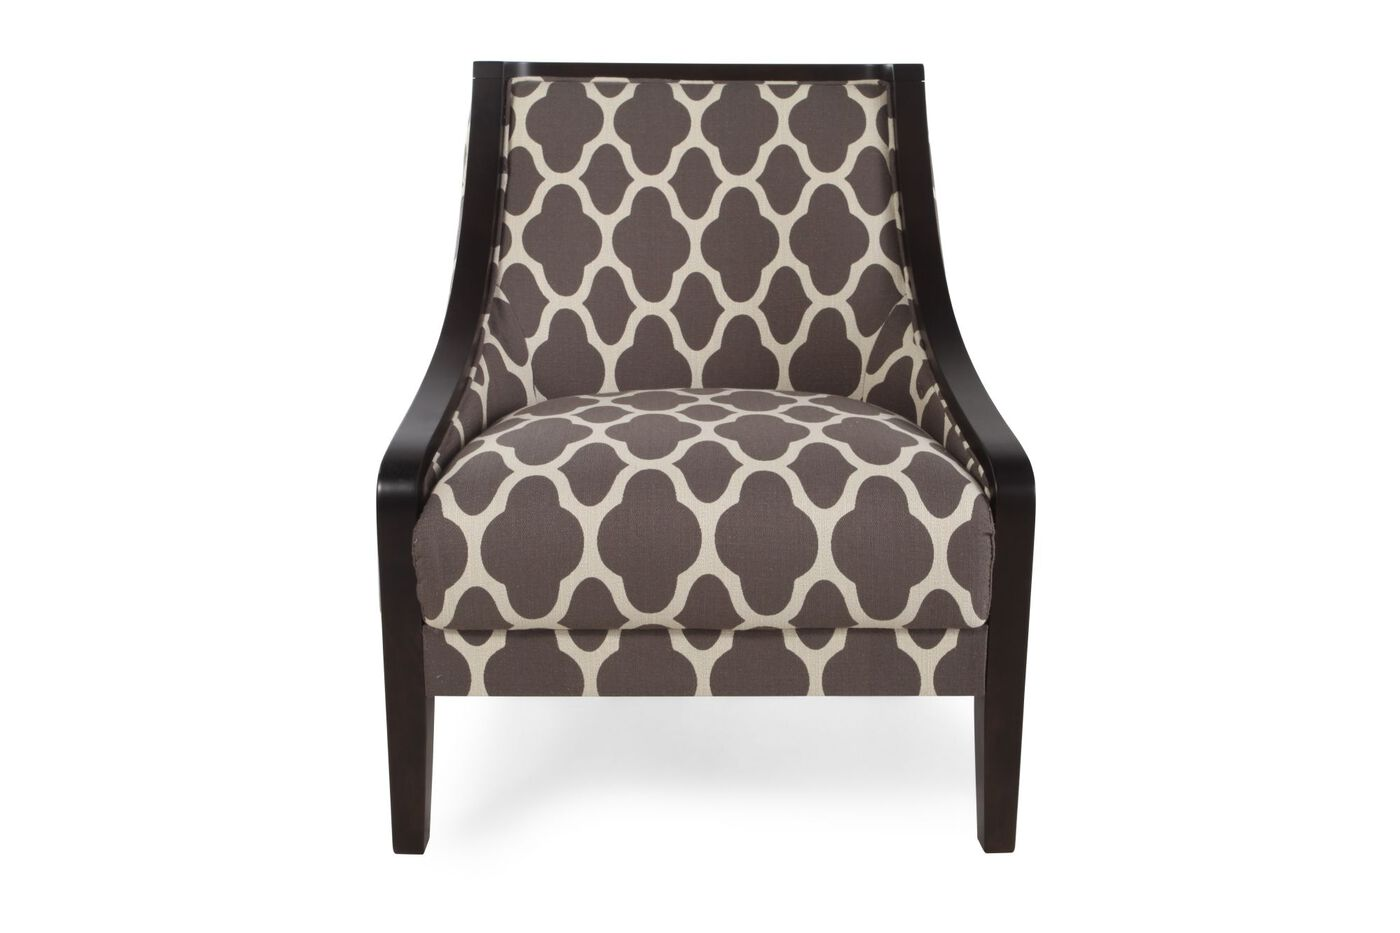 Boulevard Accent Chair. Boulevard Accent Chair   Mathis Brothers Furniture